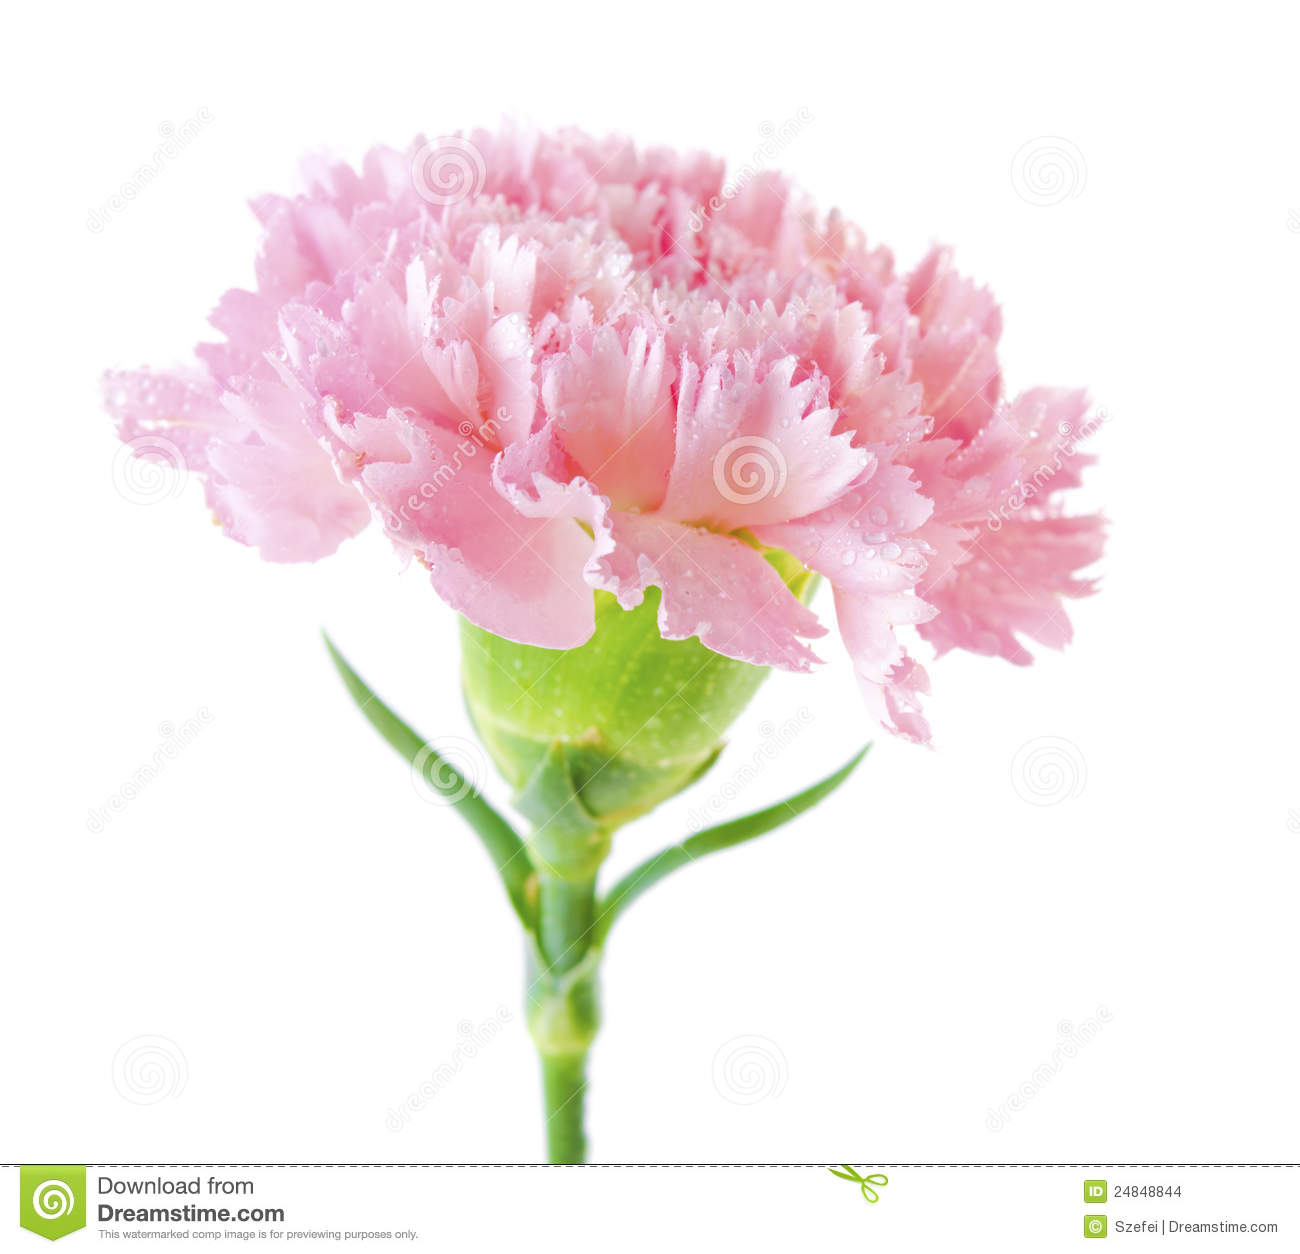 Close up pink carnation flower isolated on white background.